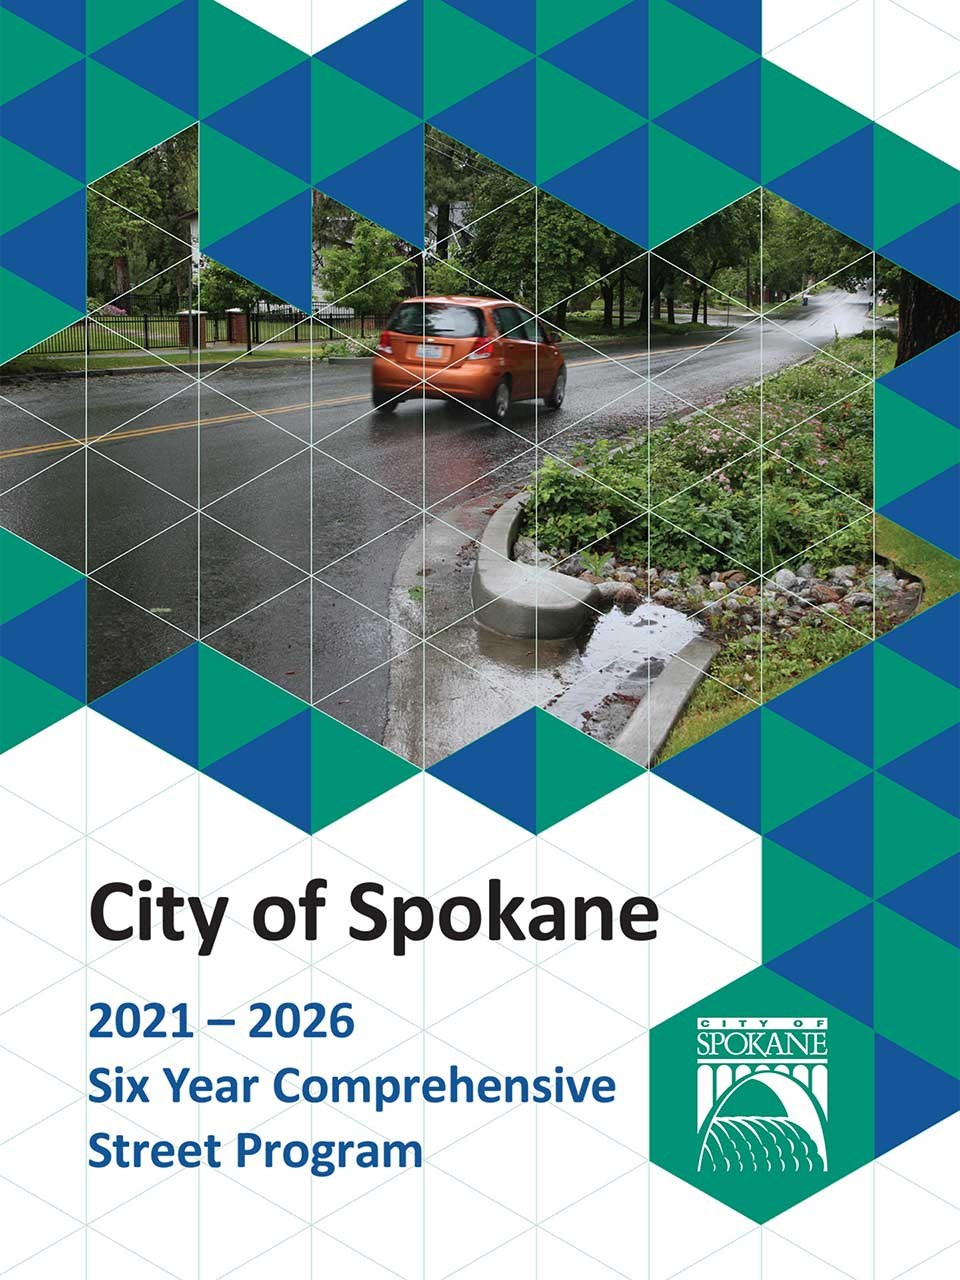 2021-2026 Six Year Comprehensive Street Program Coverpage